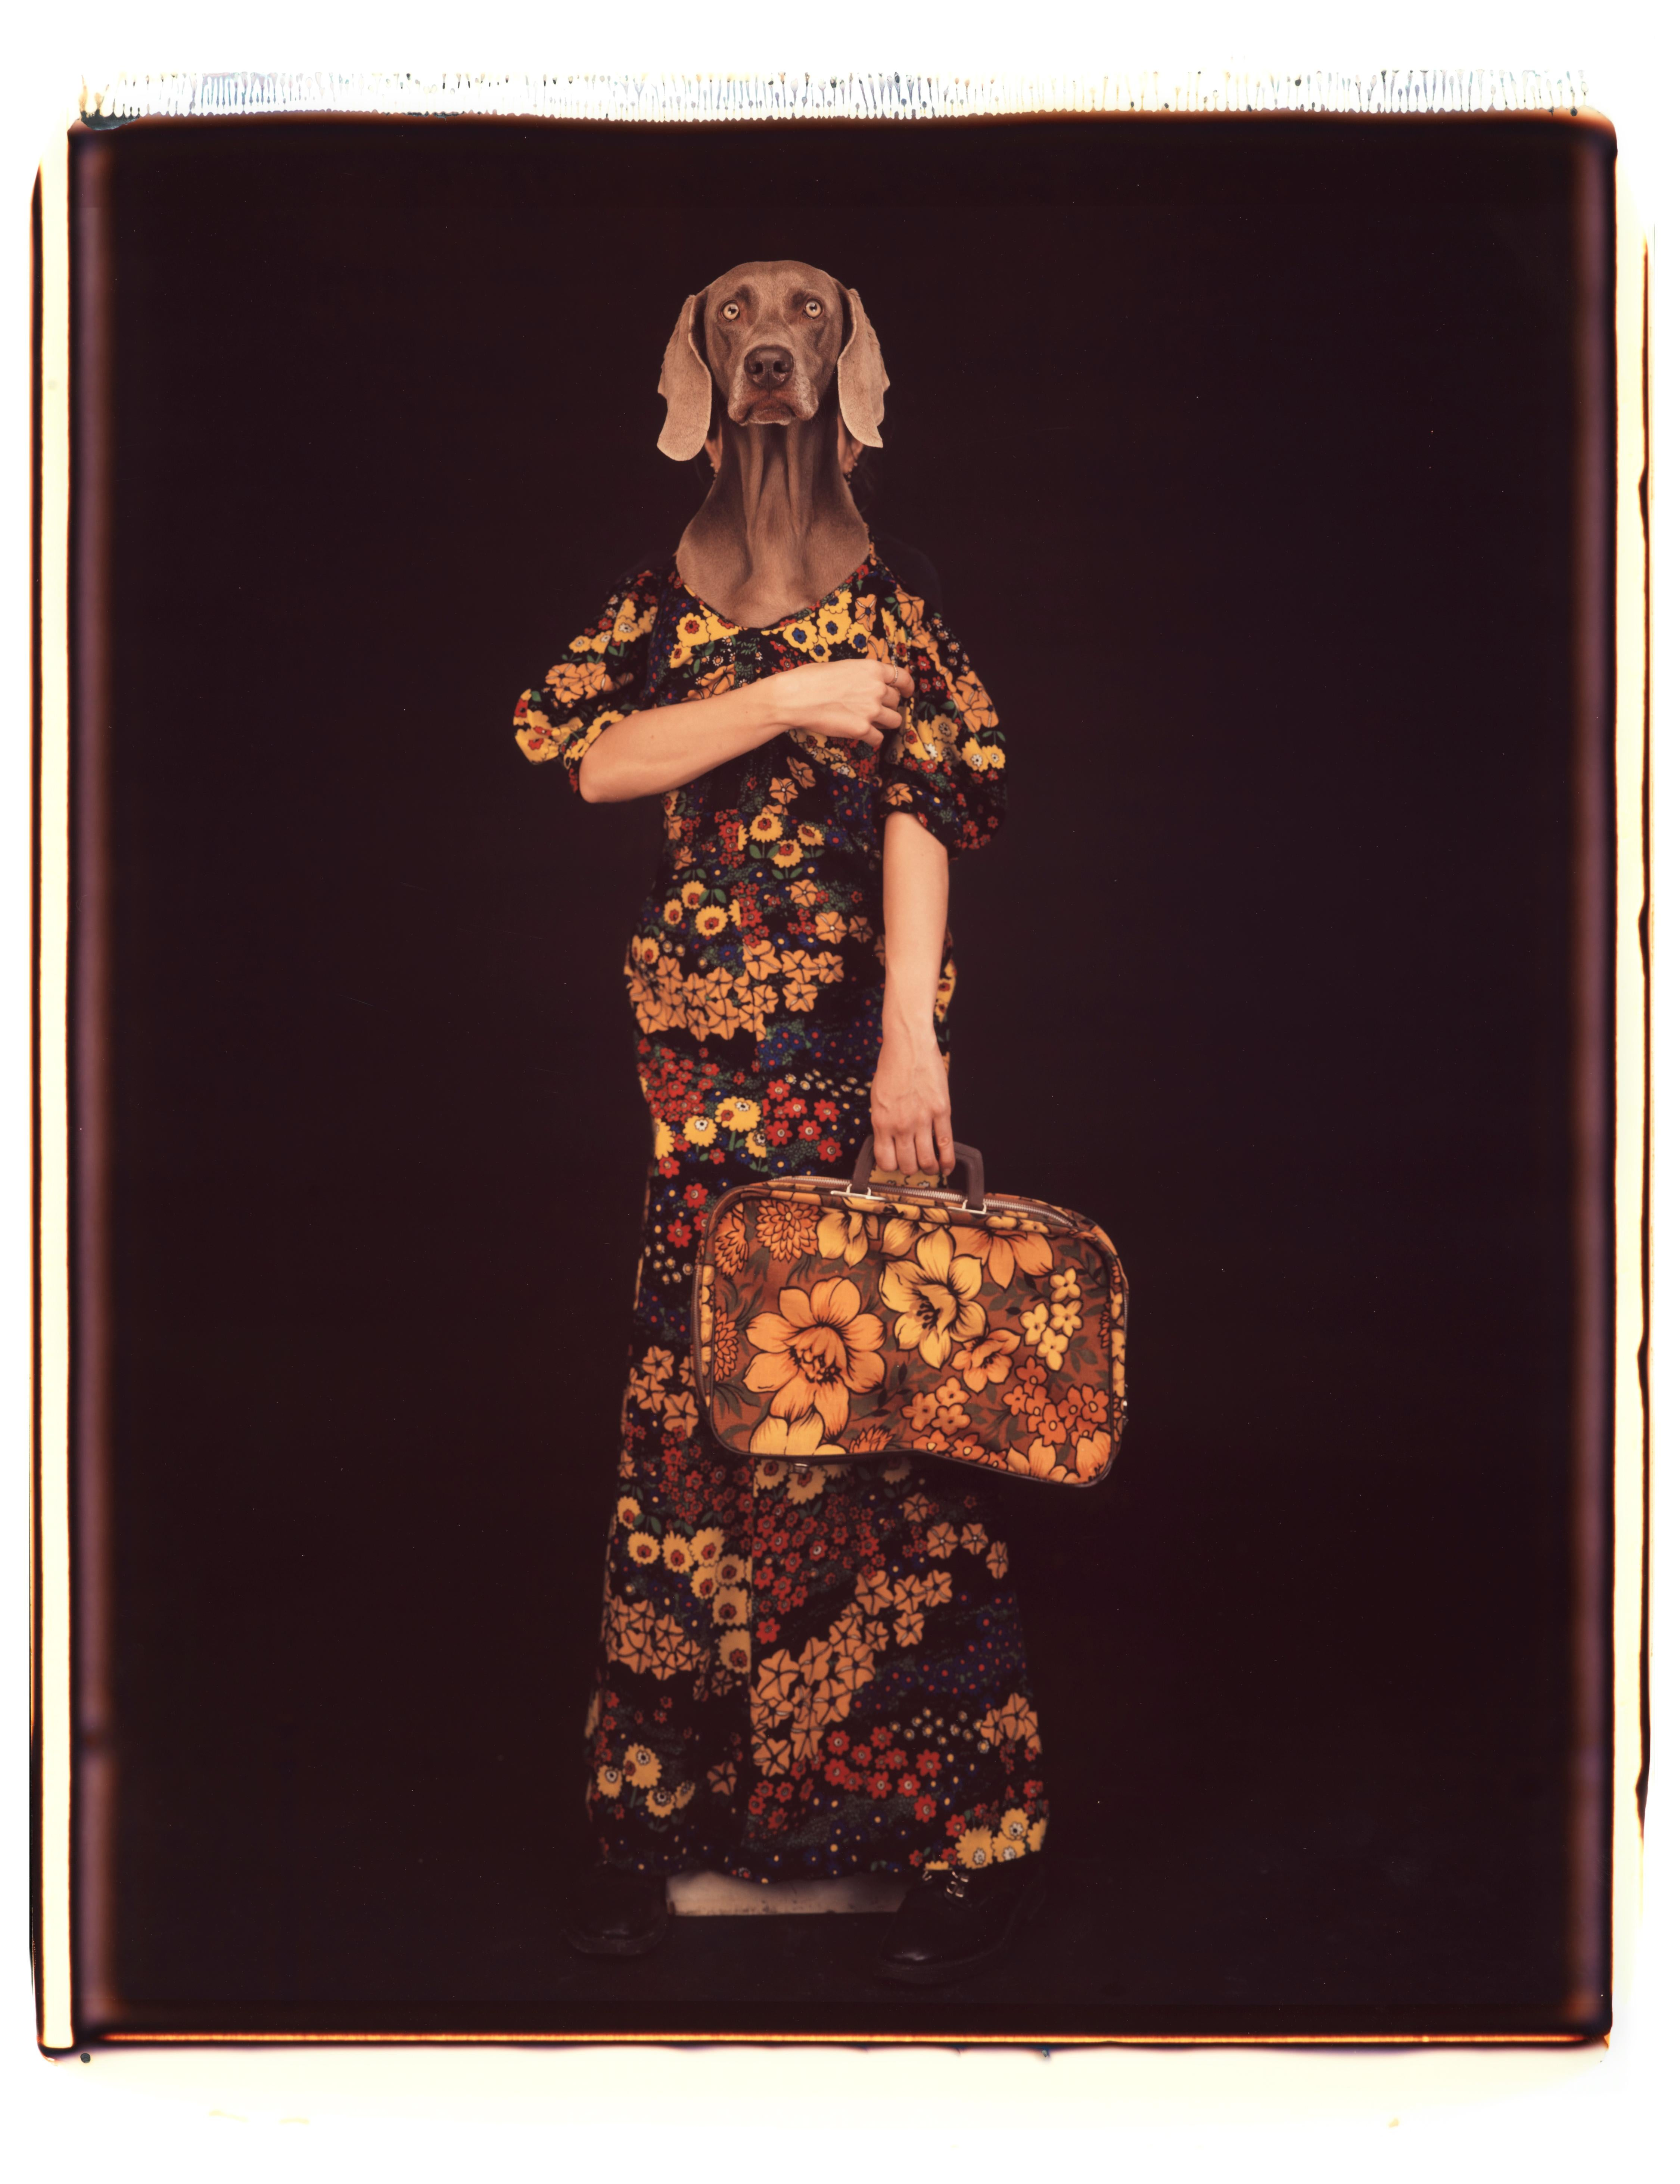 Armed and Matching - William Wegman (Colour Photography)